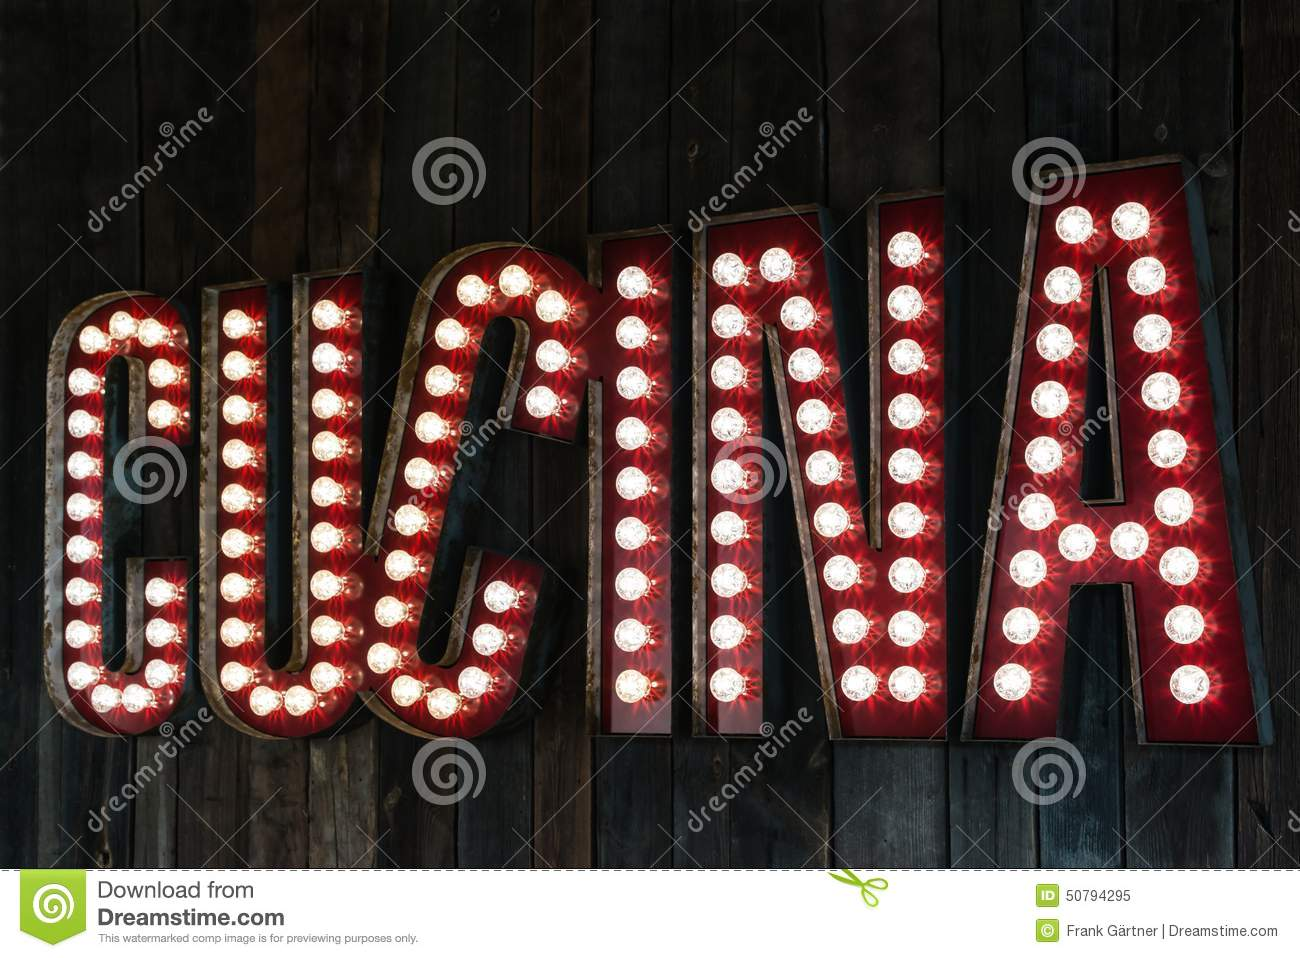 Cucina sign stock image. Image of delicious, dinner, dining ...